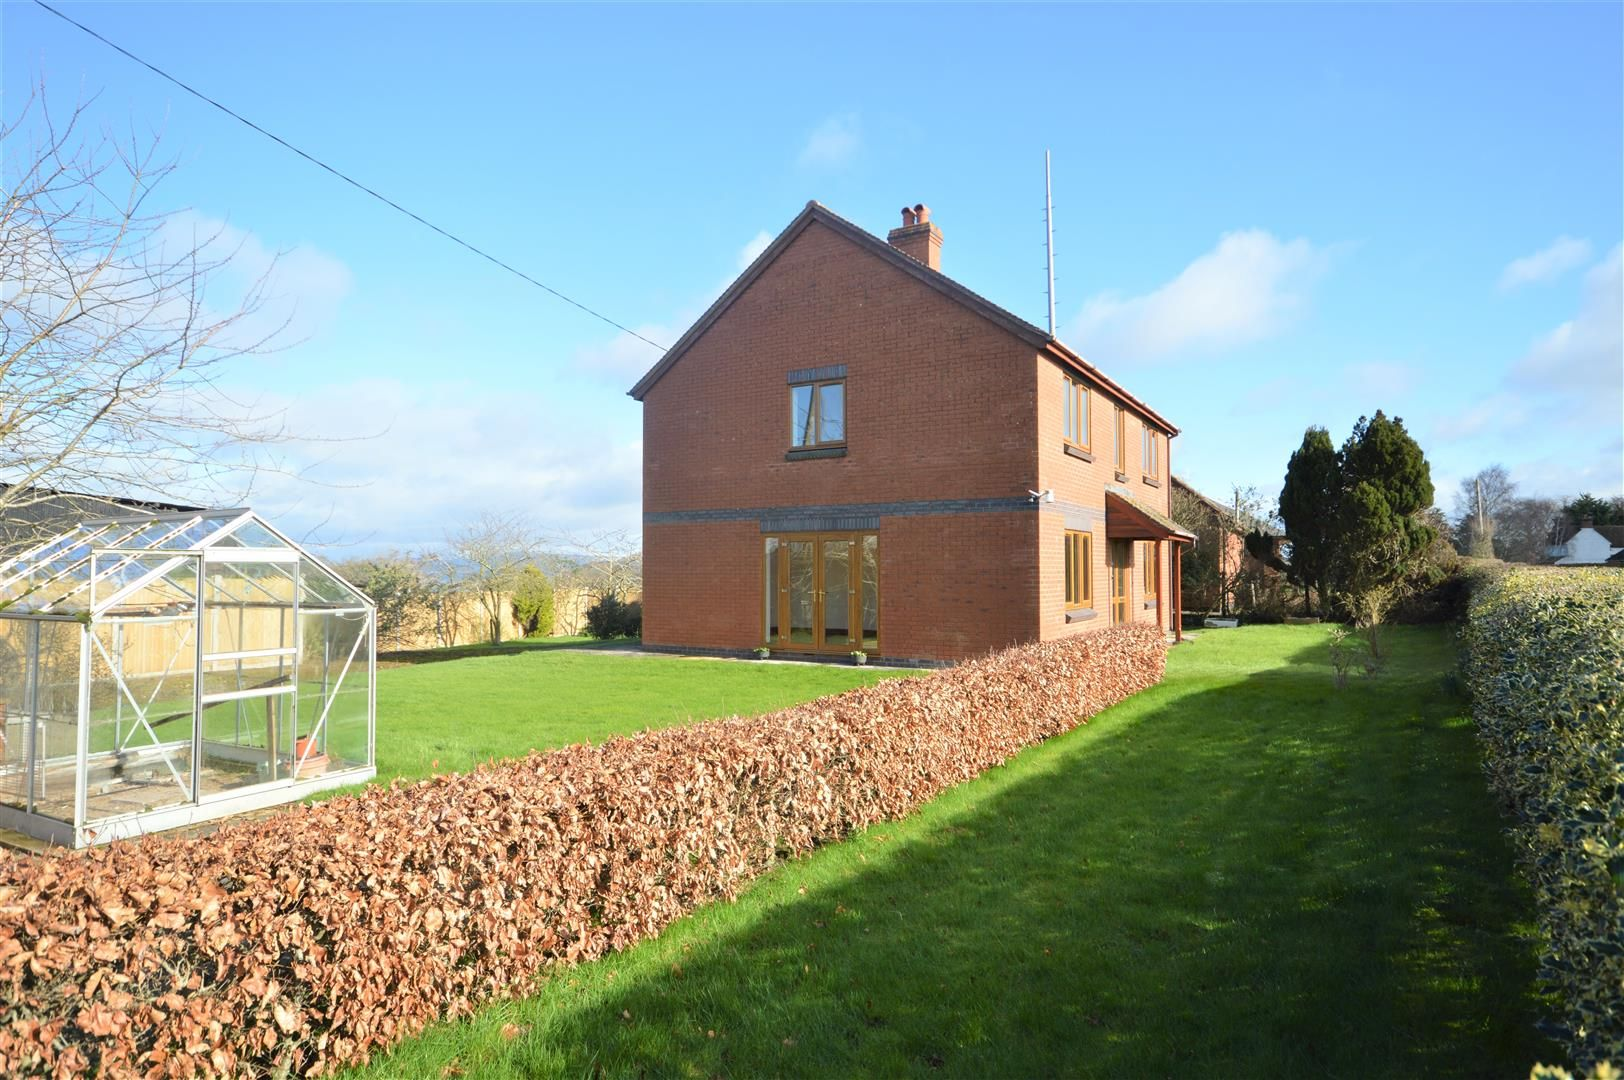 4 bed detached for sale in Leysters, HR6